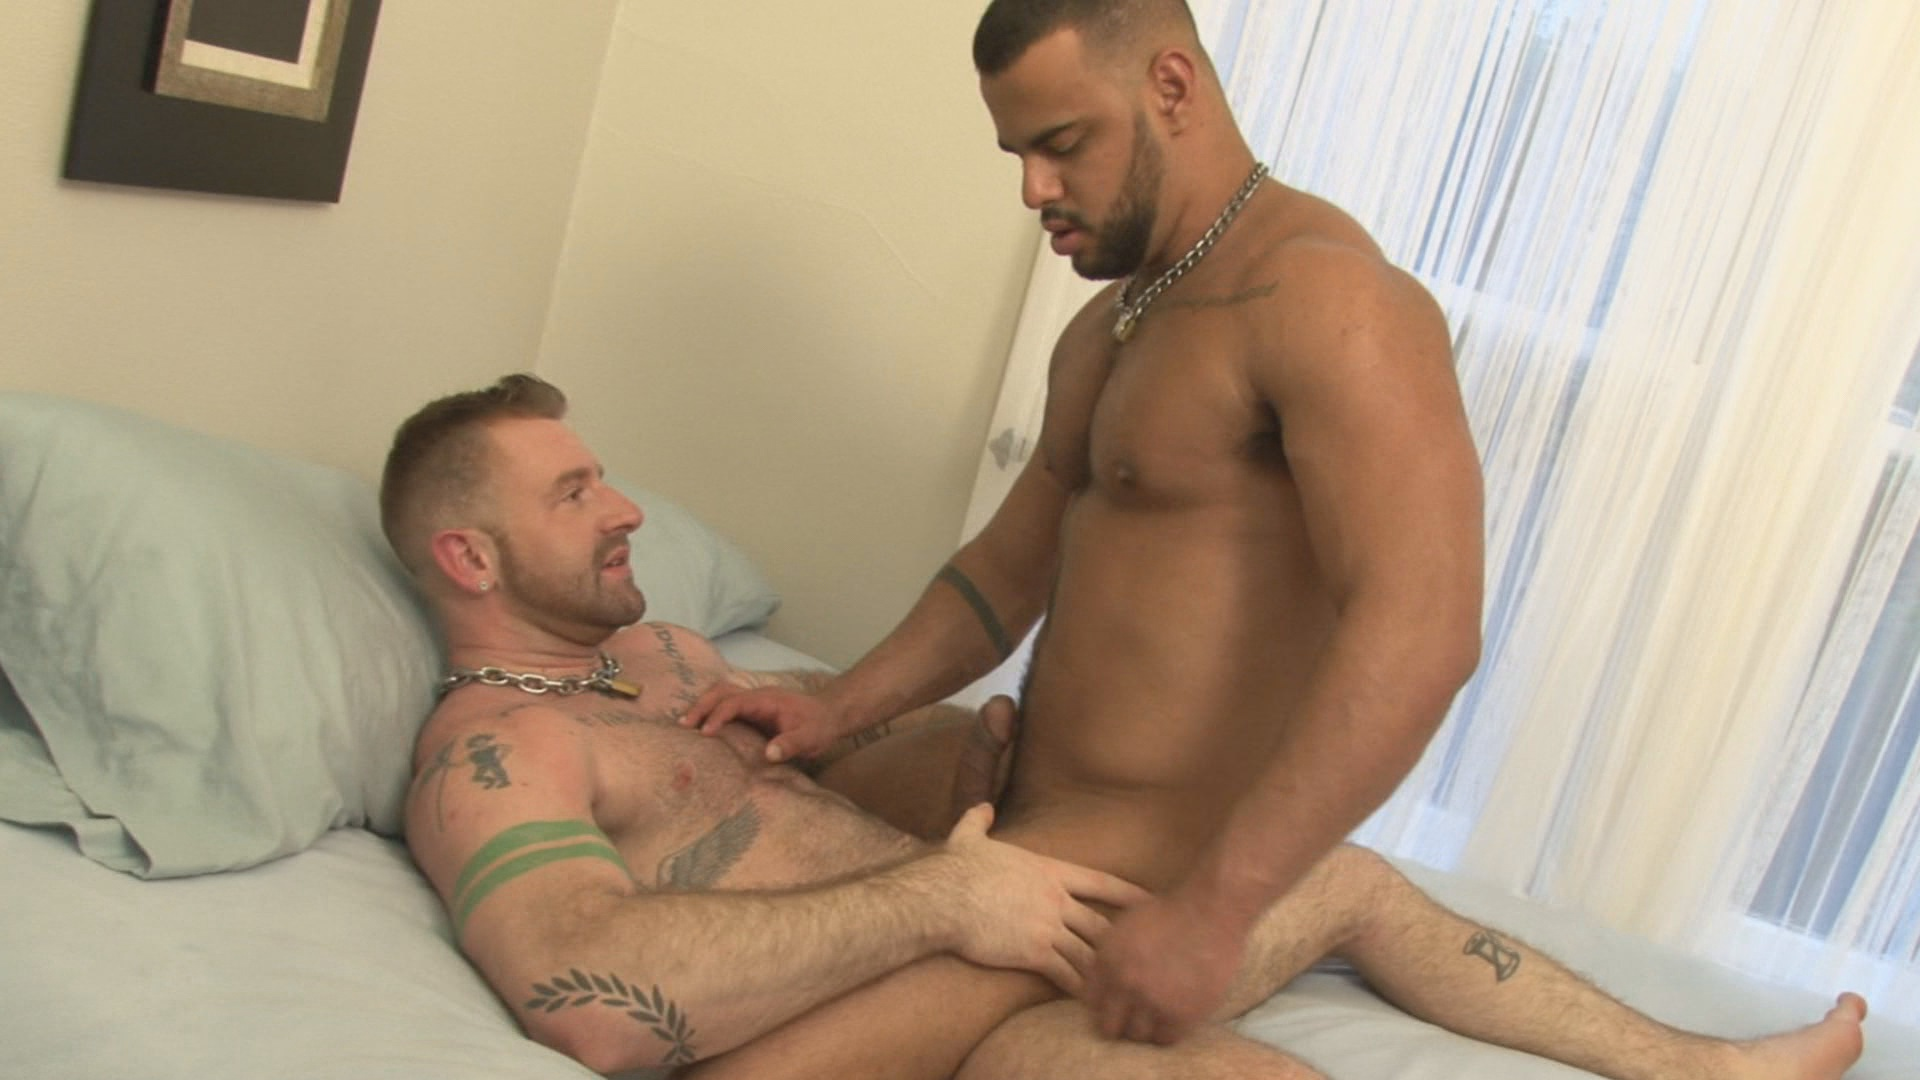 Boyfriends 2: Tony Orion And Aleks Buldocek Xvideo gay